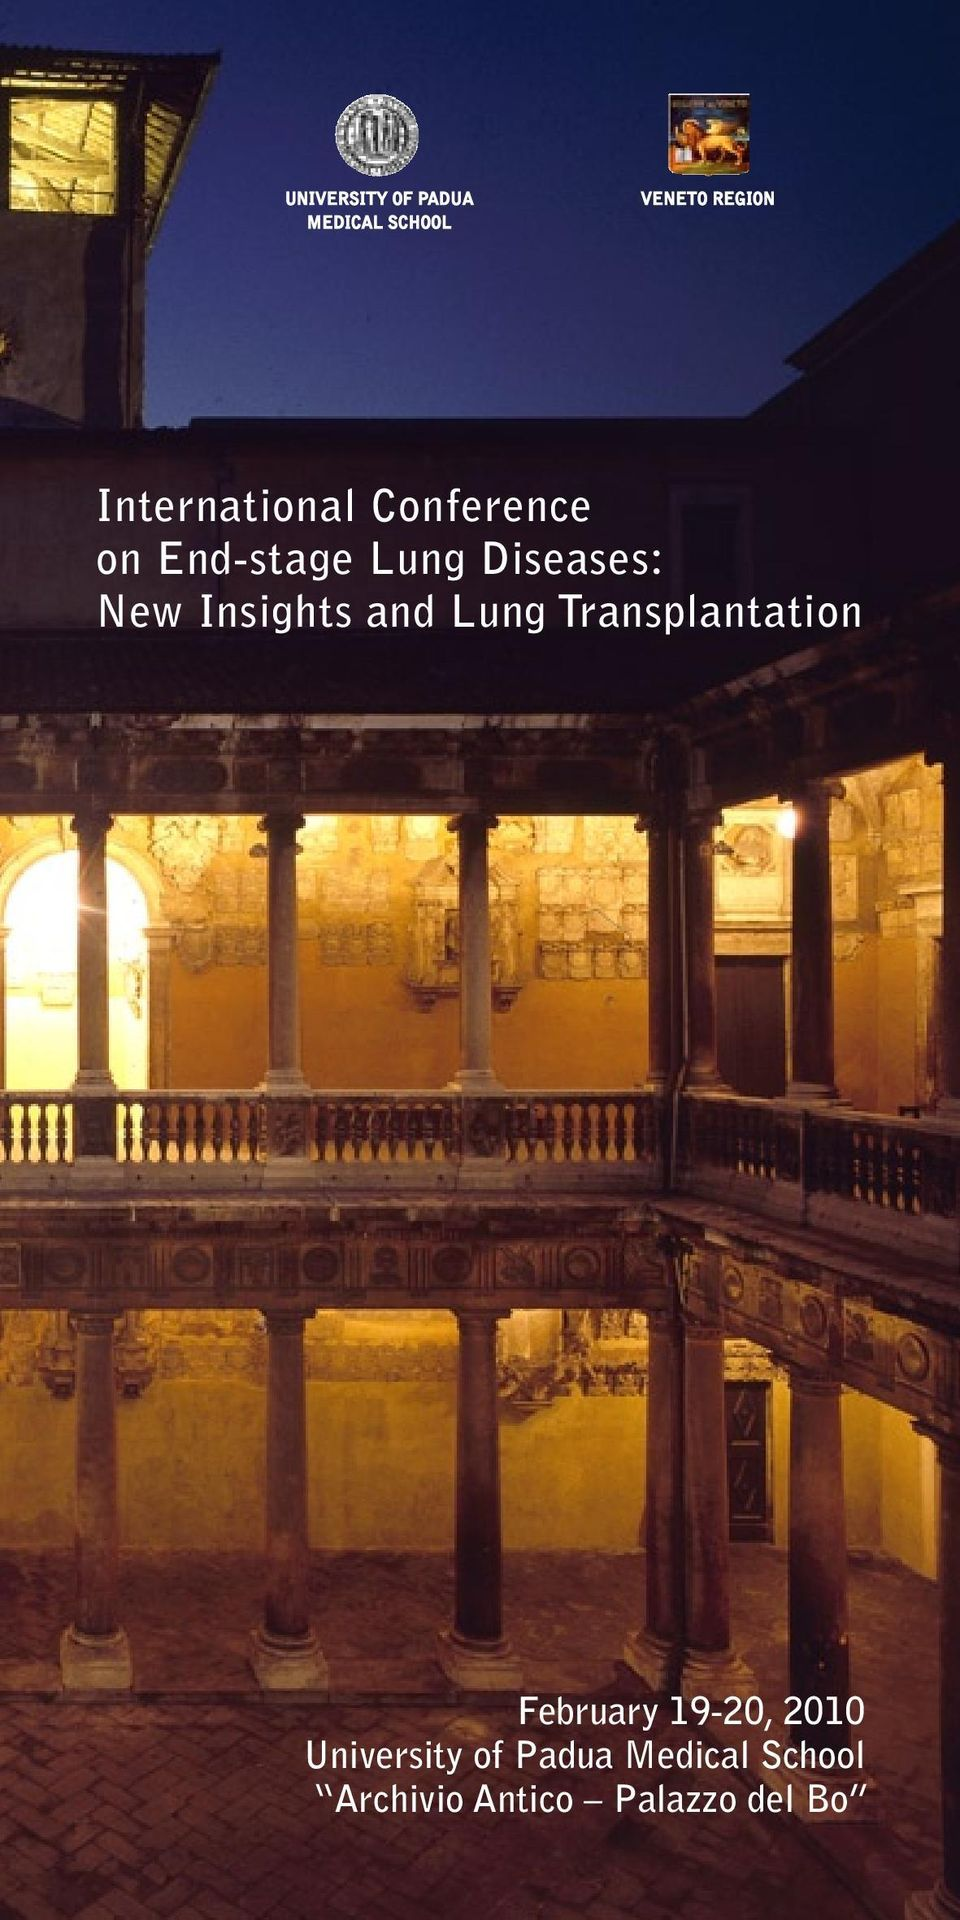 Insights and Lung Transplantation February 19-20, 2010